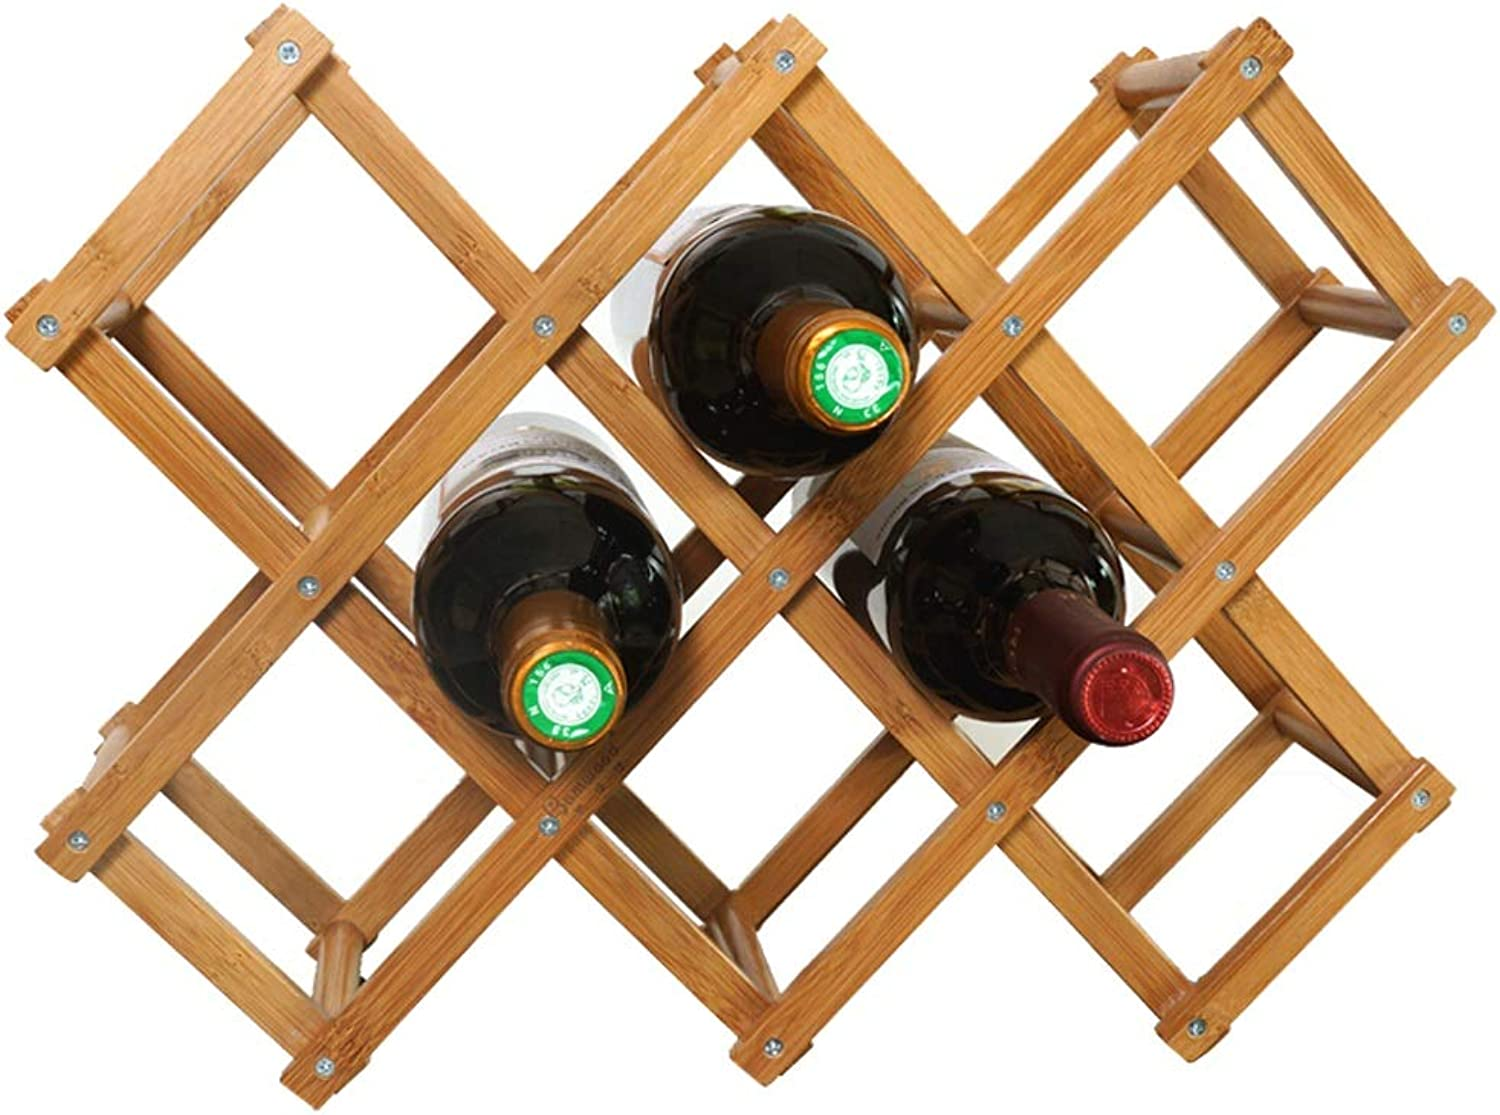 Foldable Bamboo Wine Rack Decoration Vintage Display Stand 31 X 30 X 12.5cm